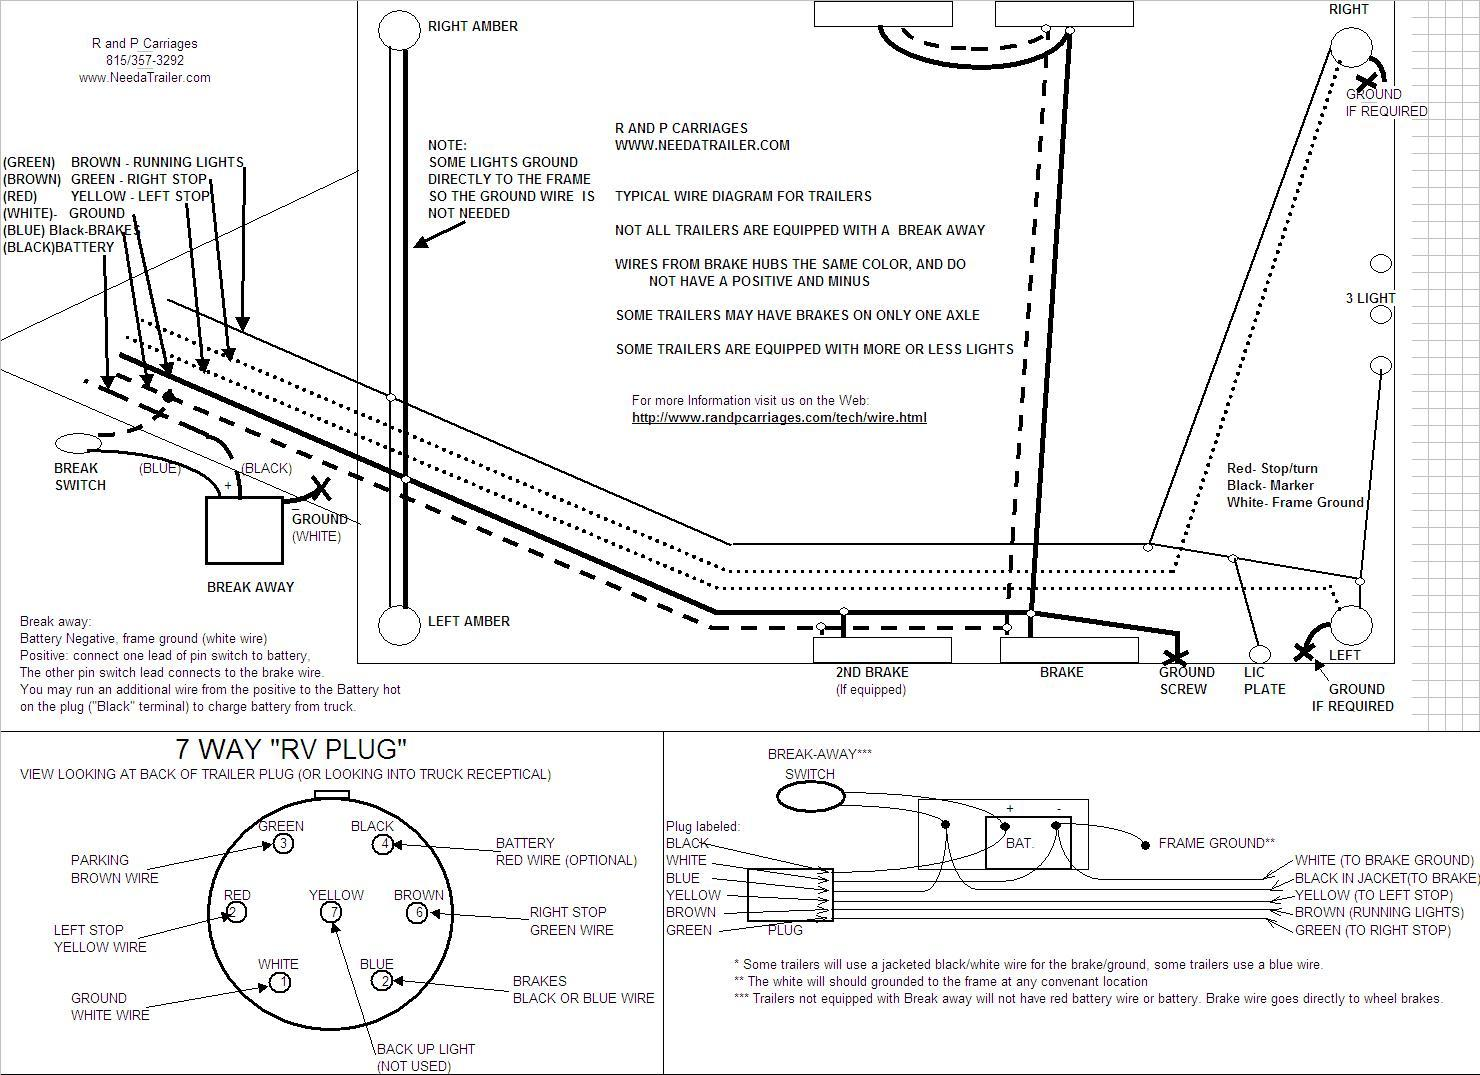 4 way trailer wiring diagram 2007 trail r and p carriages trailers  parts  service  and rentals  r and p carriages trailers  parts